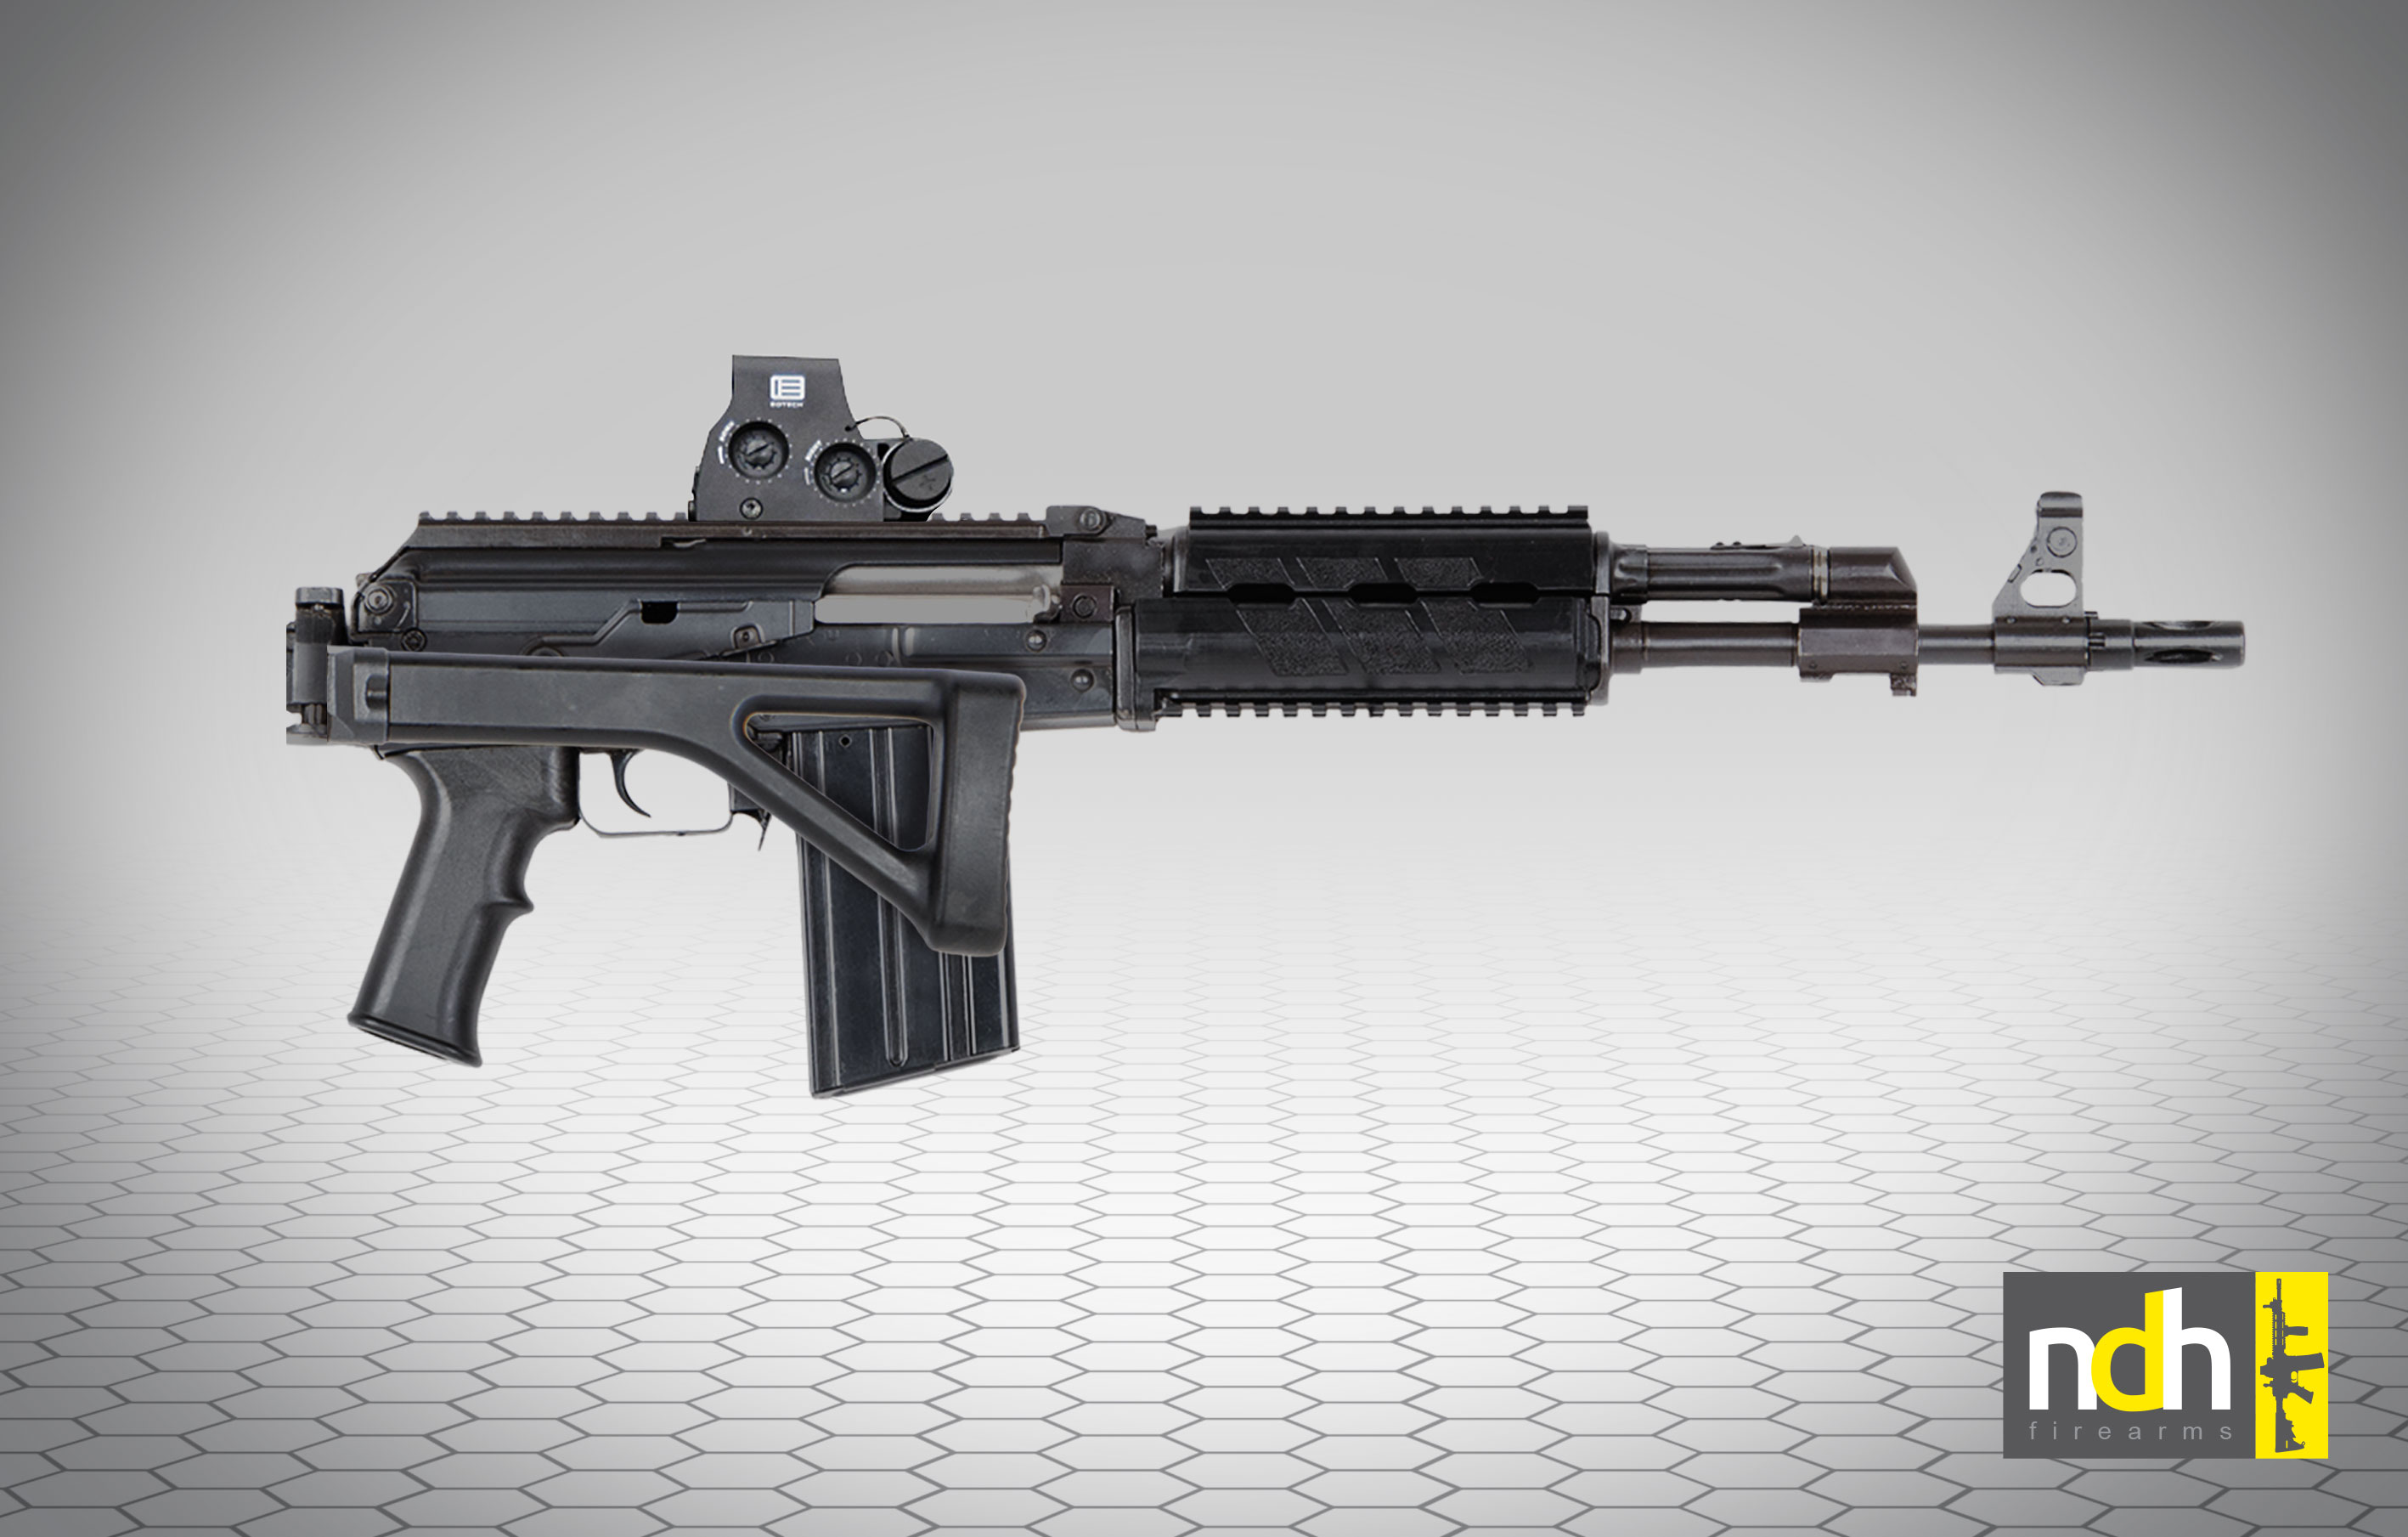 zastava-m05-sbr-select-fire-7-62-x-51mm-nato-assault-rifle